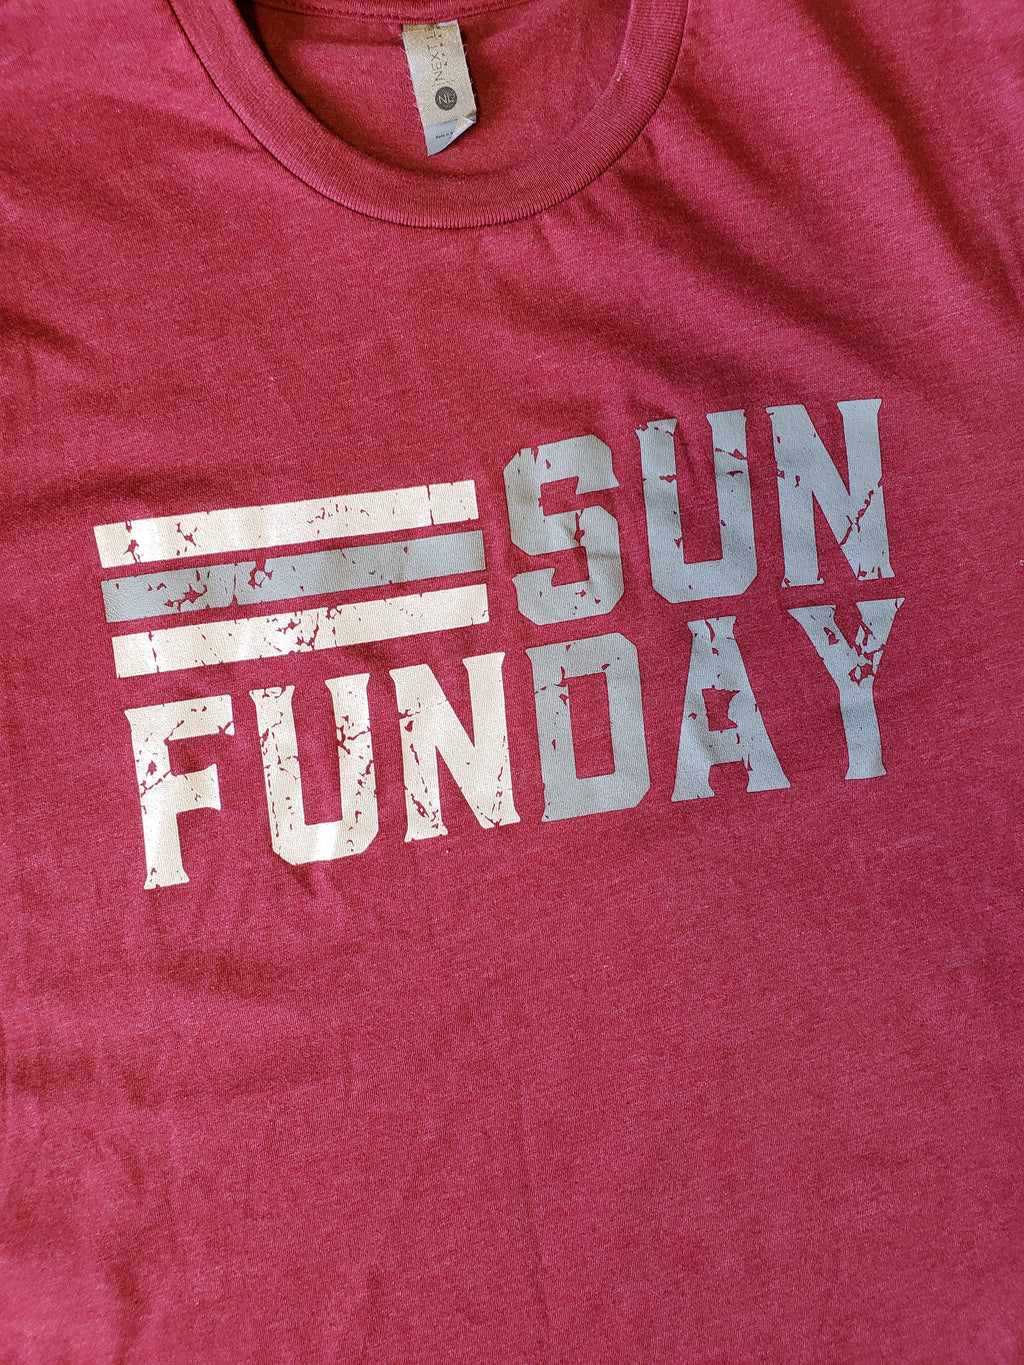 Sunday Funday Tee - Cardinal/Gray